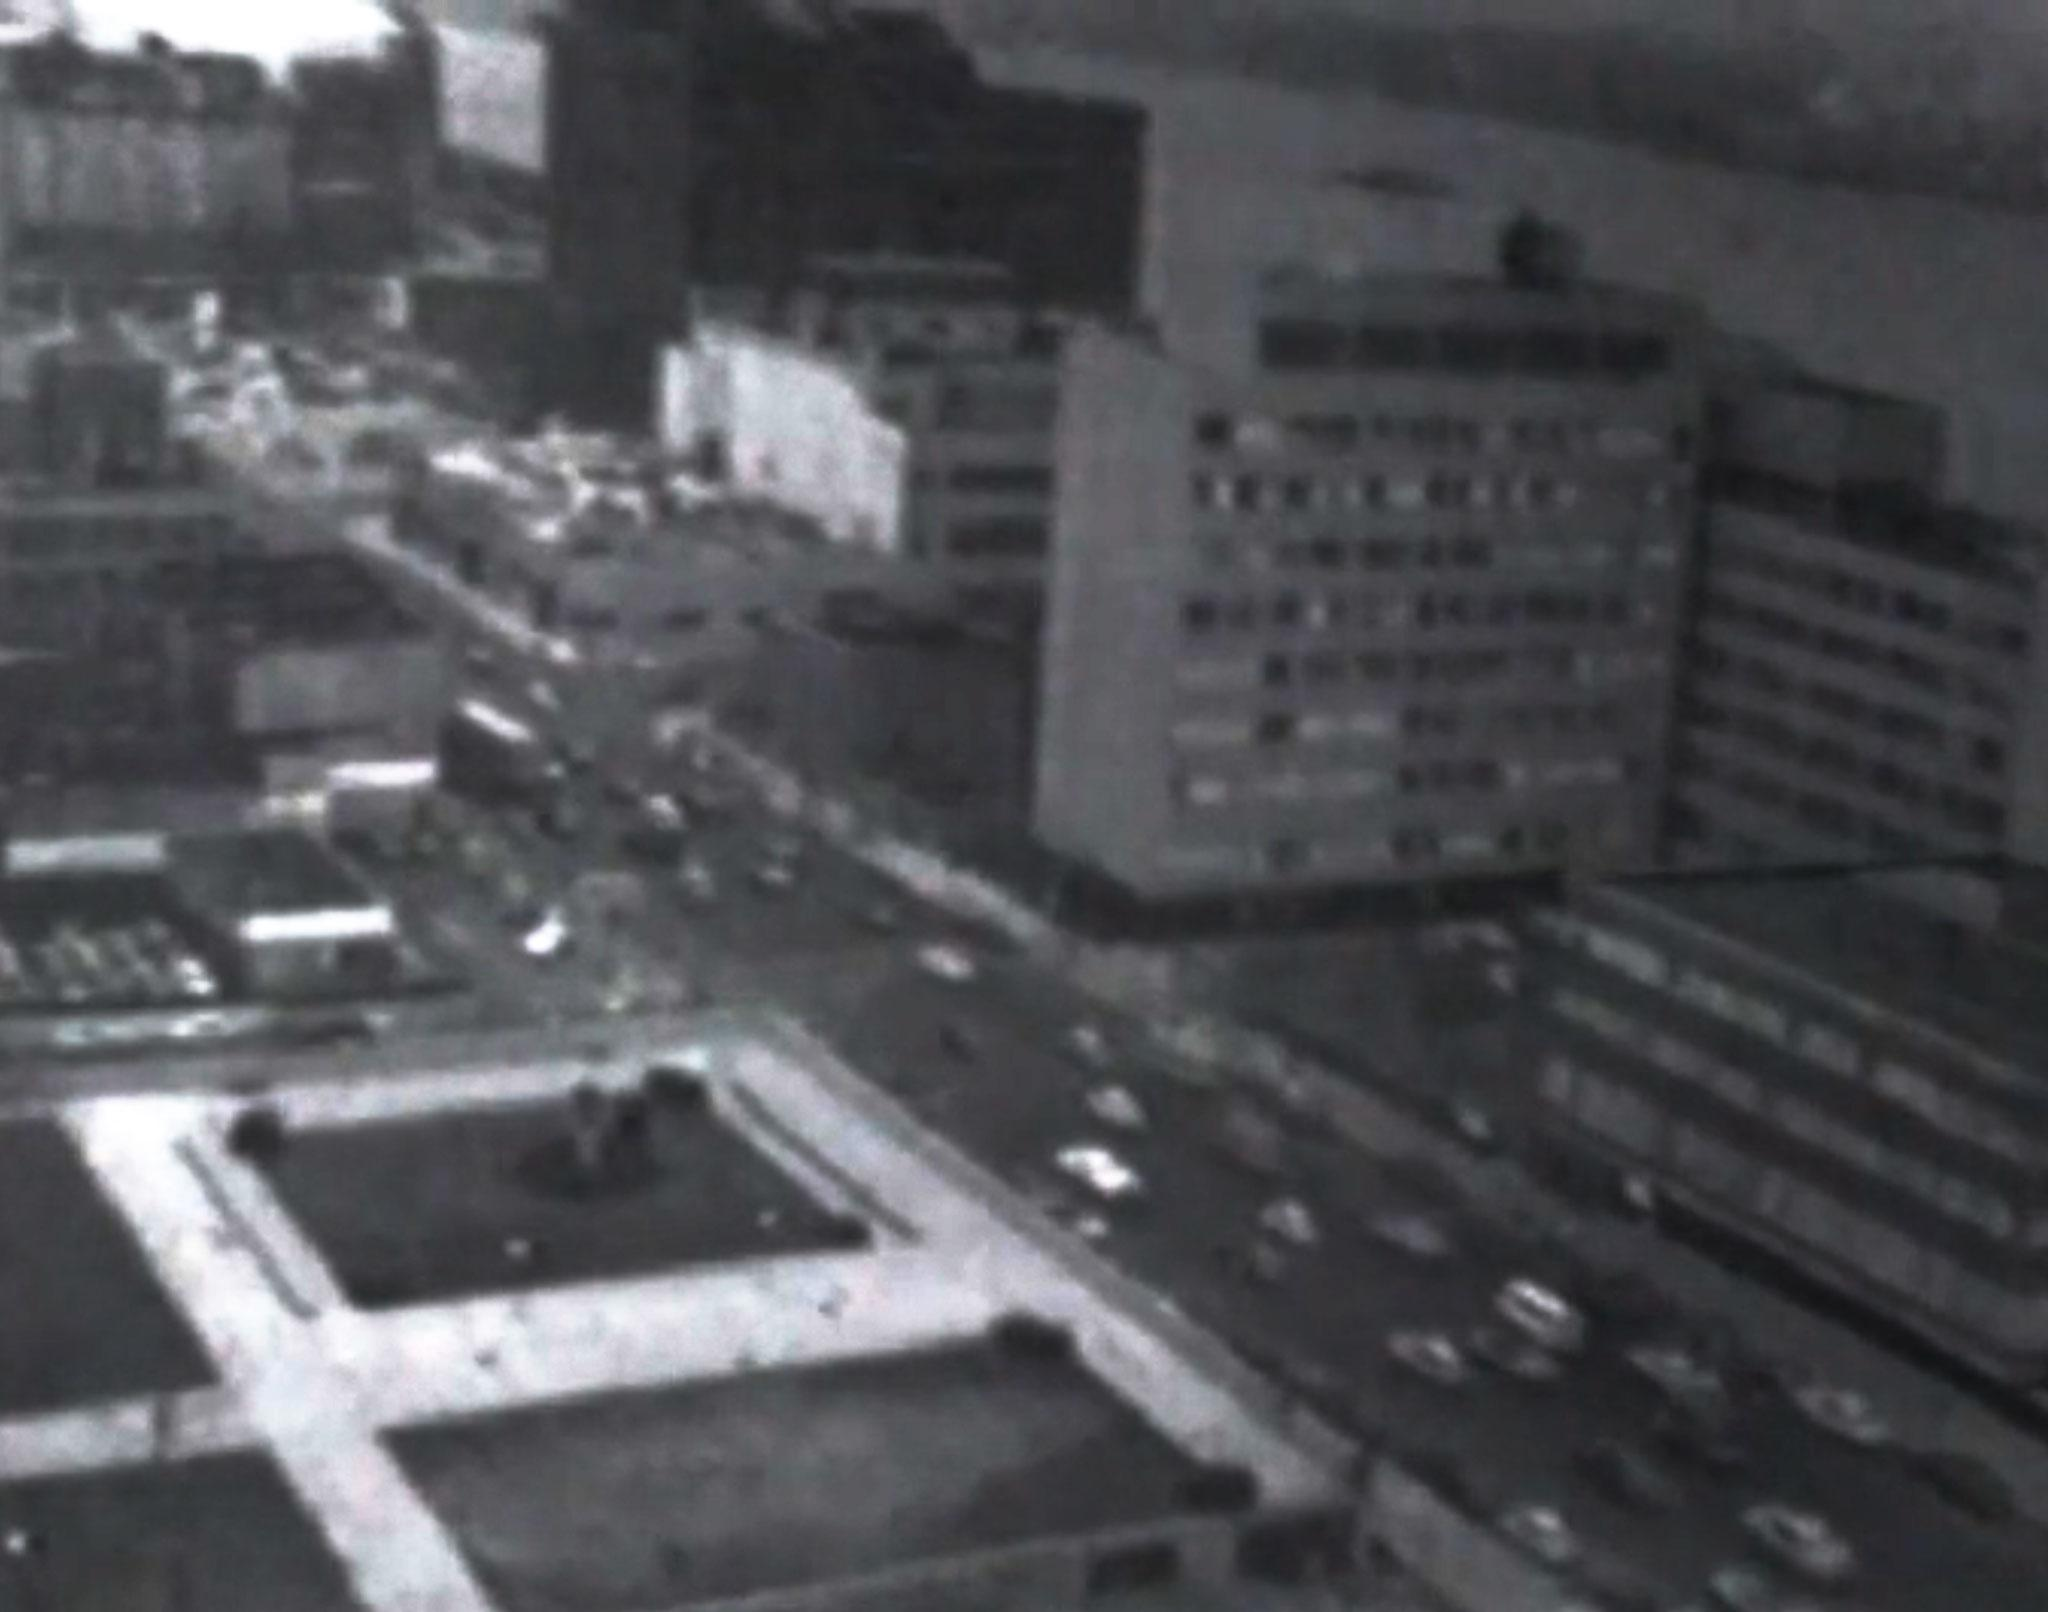 black and white urban scene from a high vista featuring buildings and a busy road